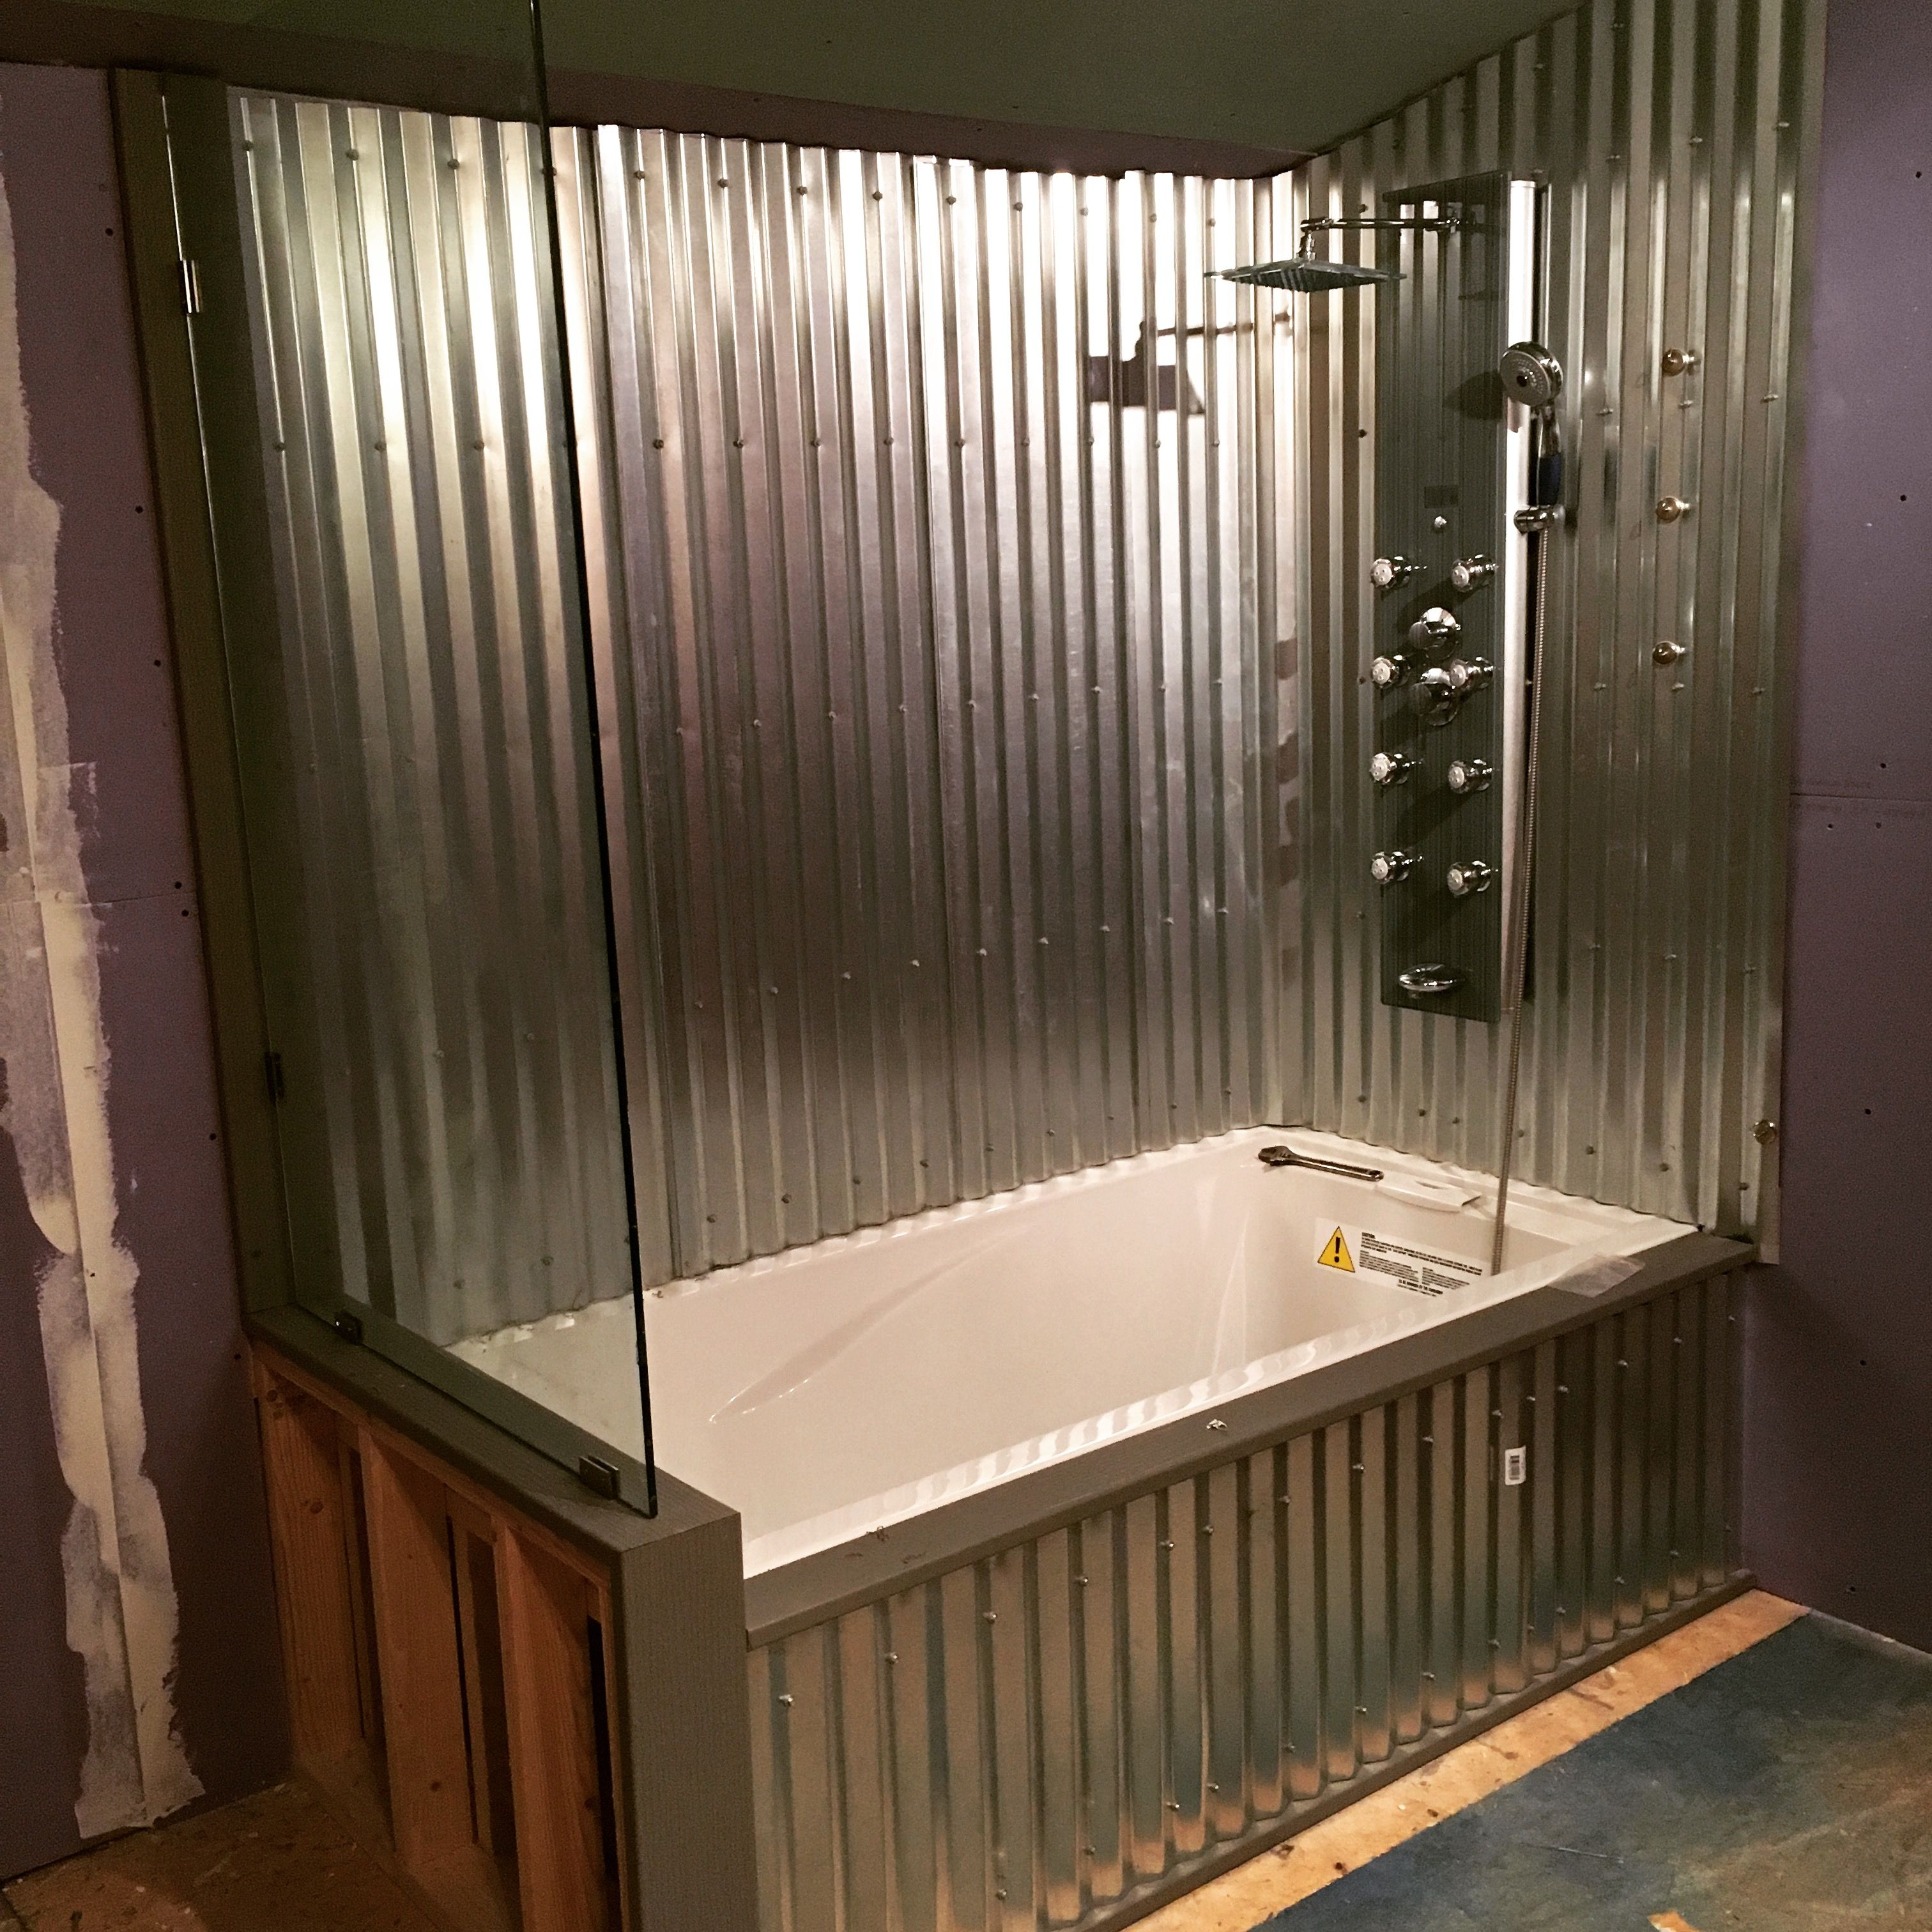 Drop In Tub With Corrugated Metal Surround And Glass Wall